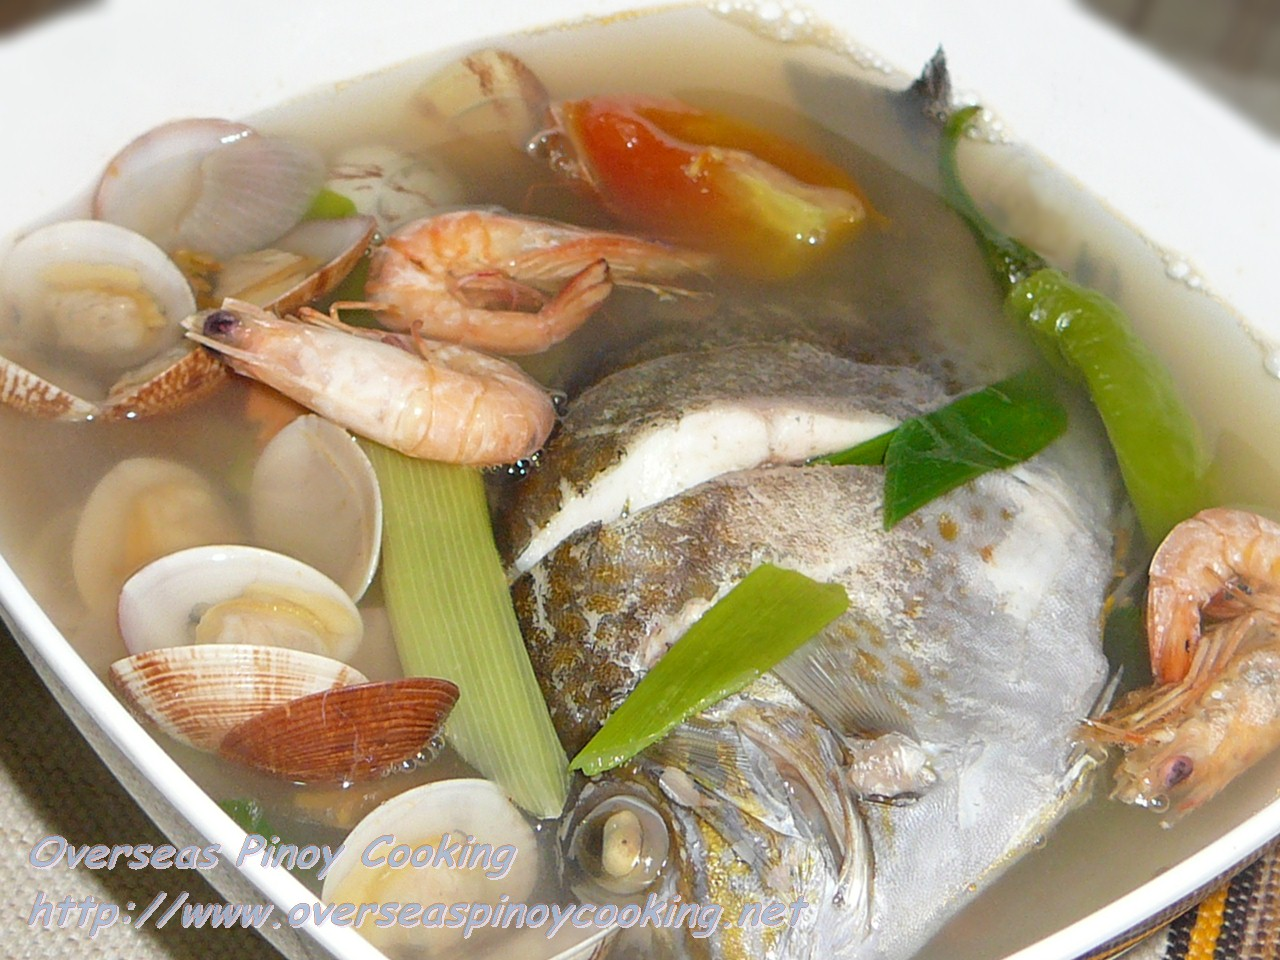 Overseas pinoy cooking august 2012 for Filipino fish recipes